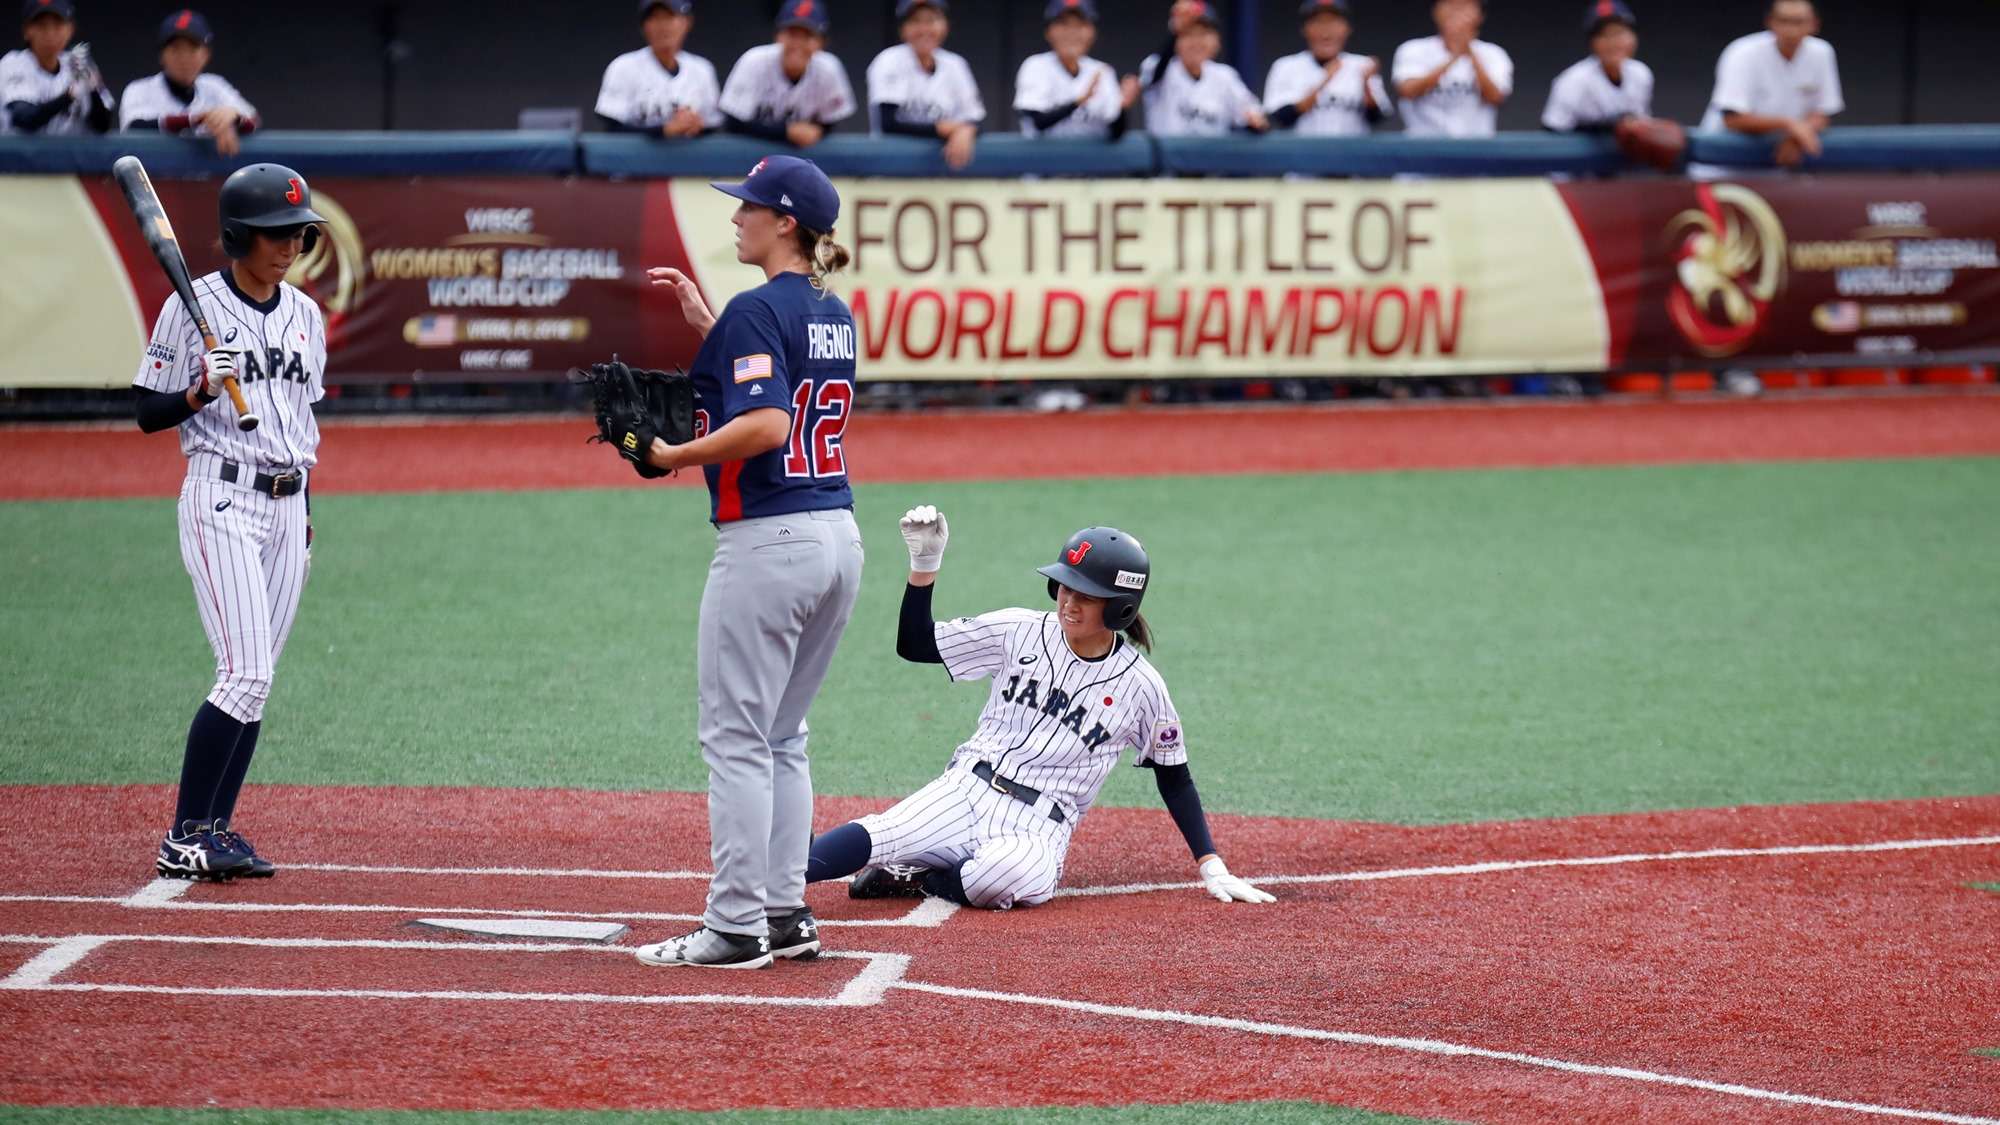 Japan also mastered the running game: they stole three bases in the first three innings and scored on a squeeze play